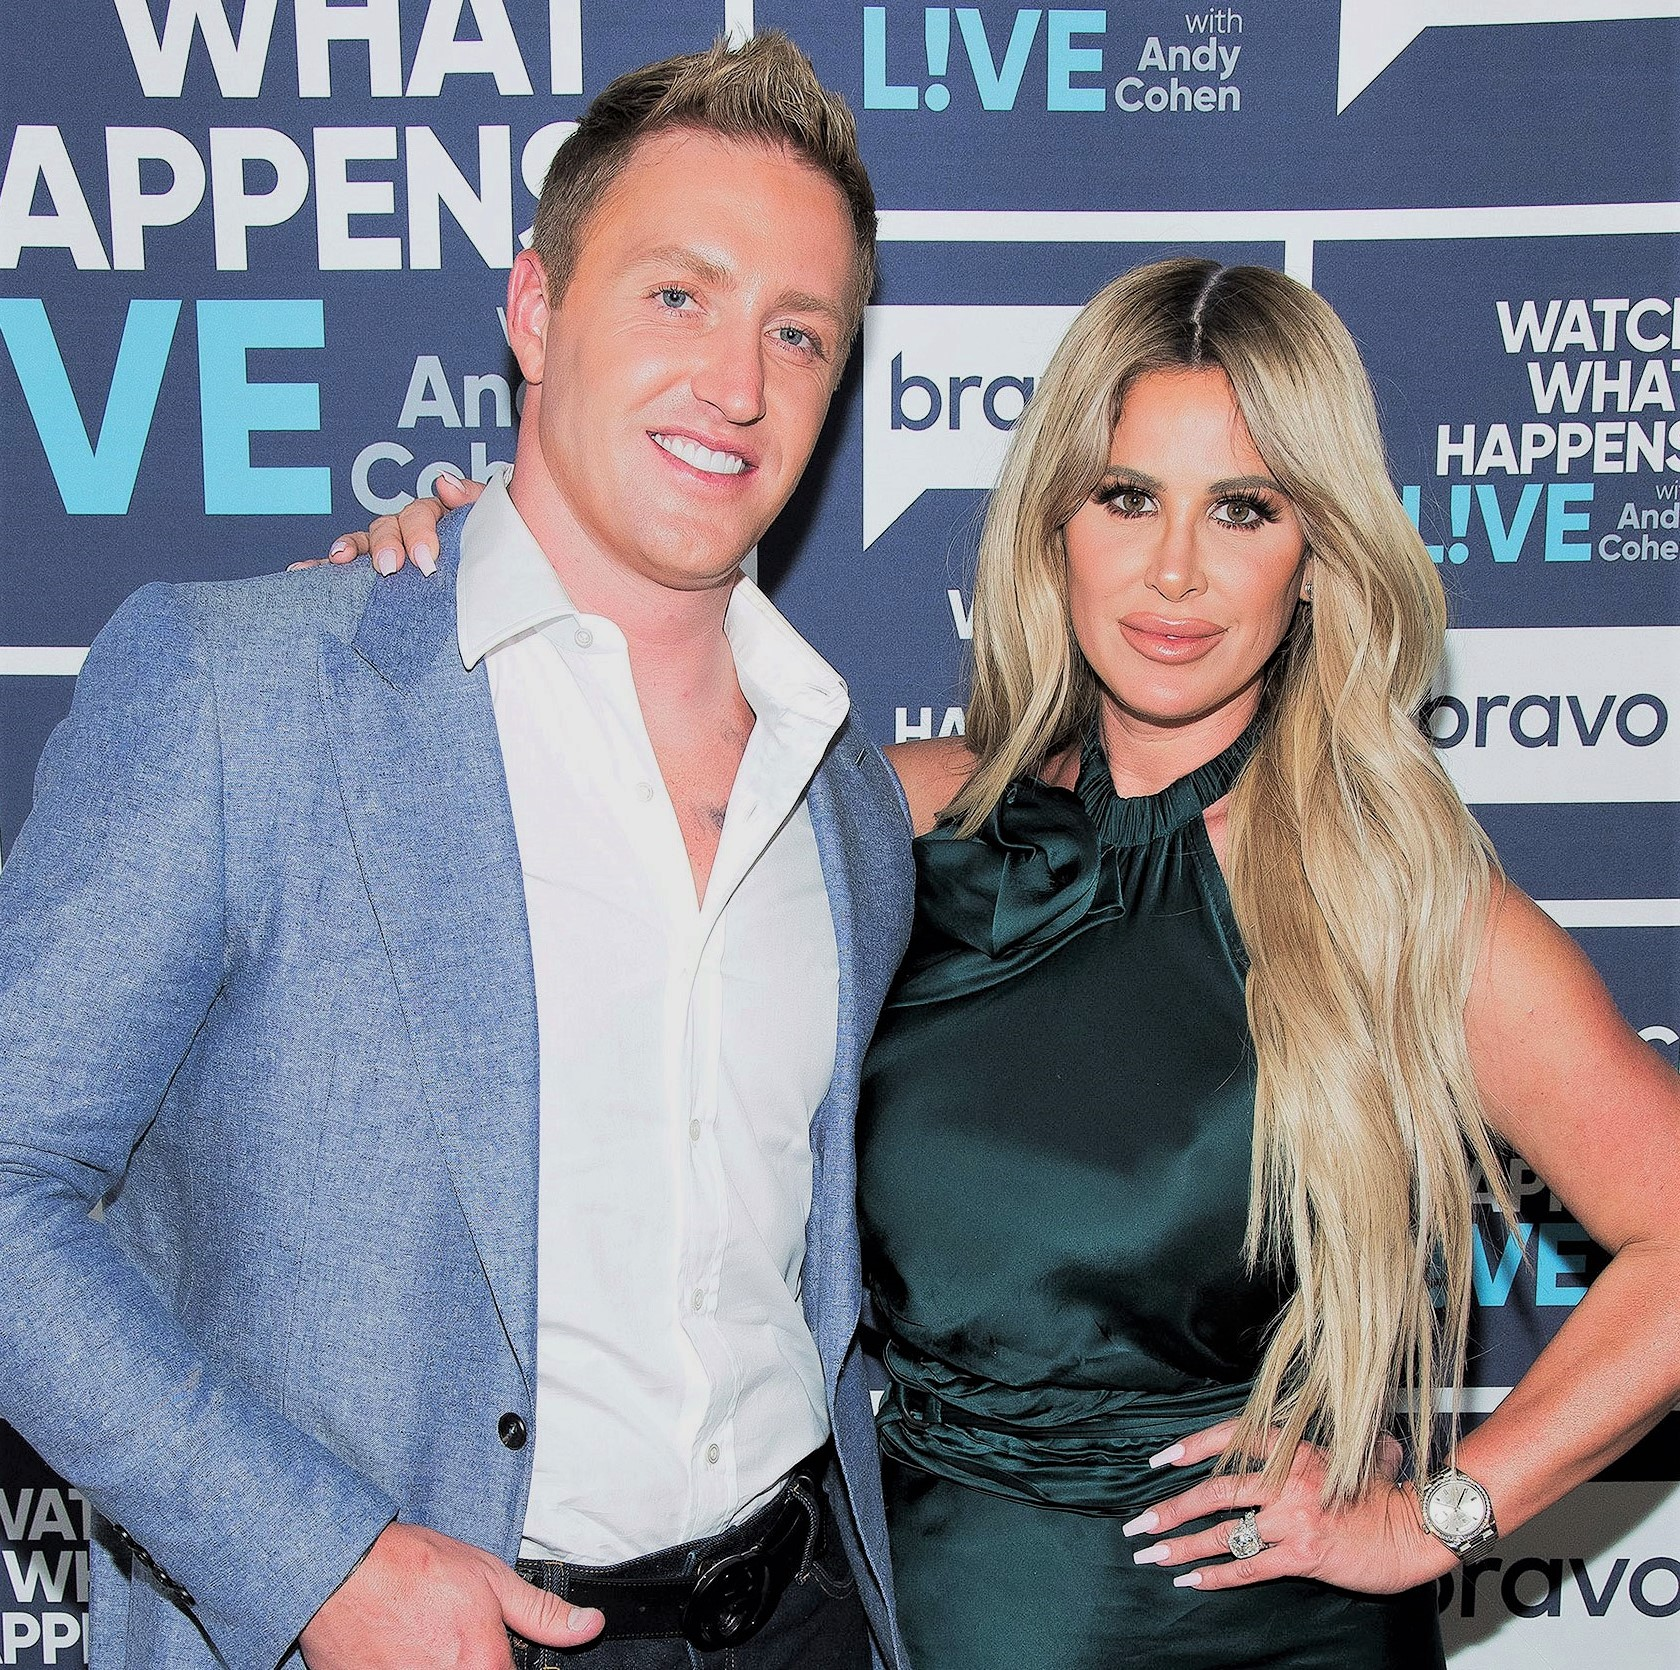 Kim Zolciak-Biermann Claims Delta Agent Removed Her Kids from Plane While She Was in Bathroom